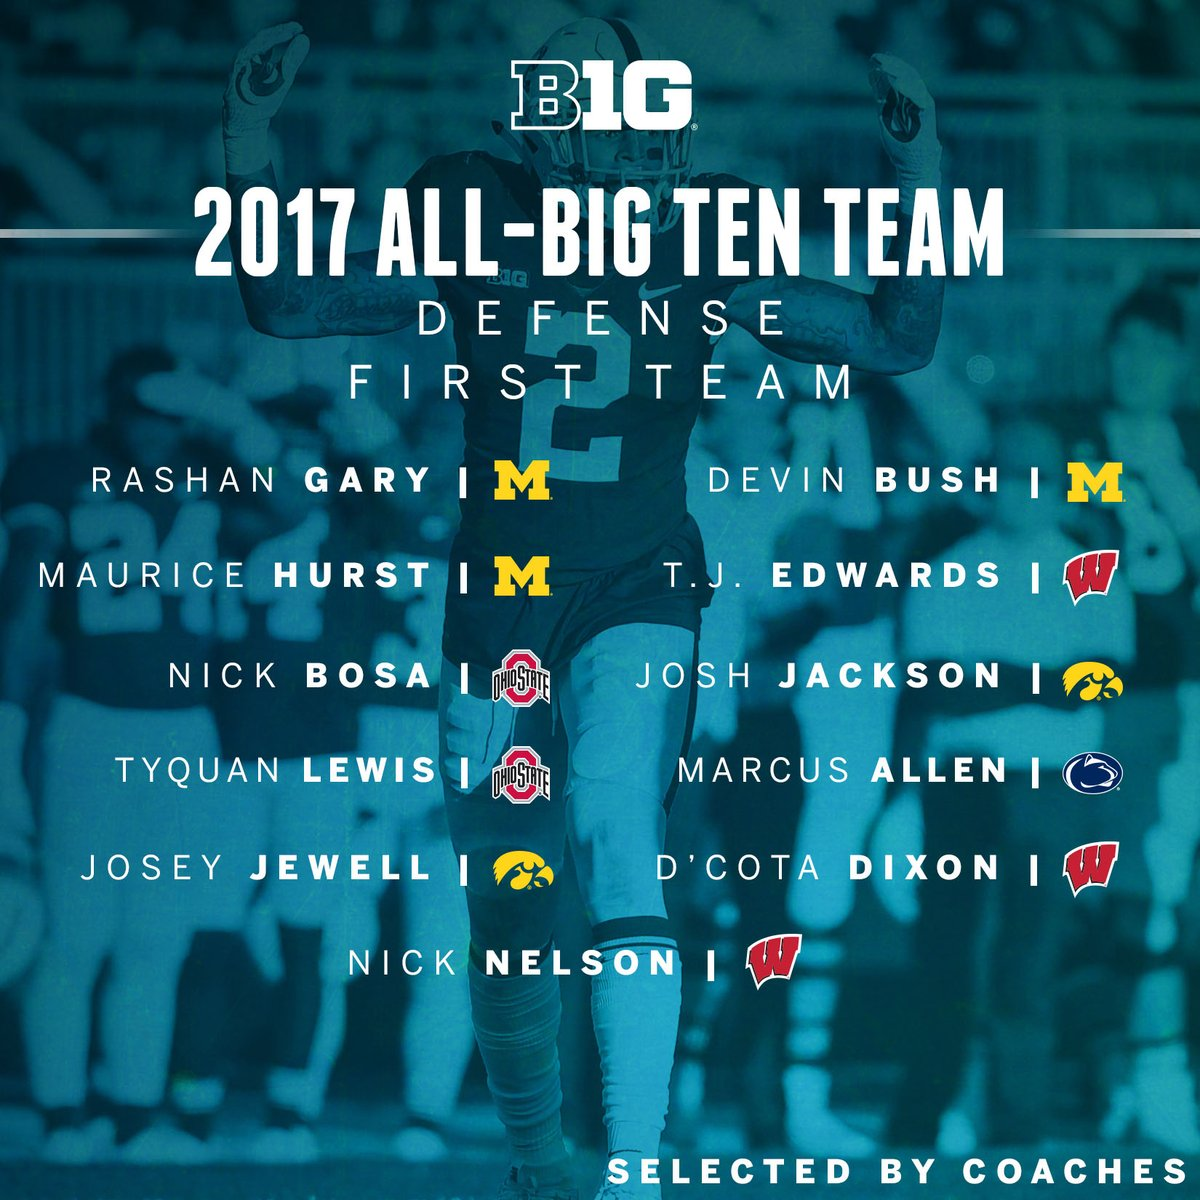 All-Big Ten Defense First Team (As Selected by Coaches)